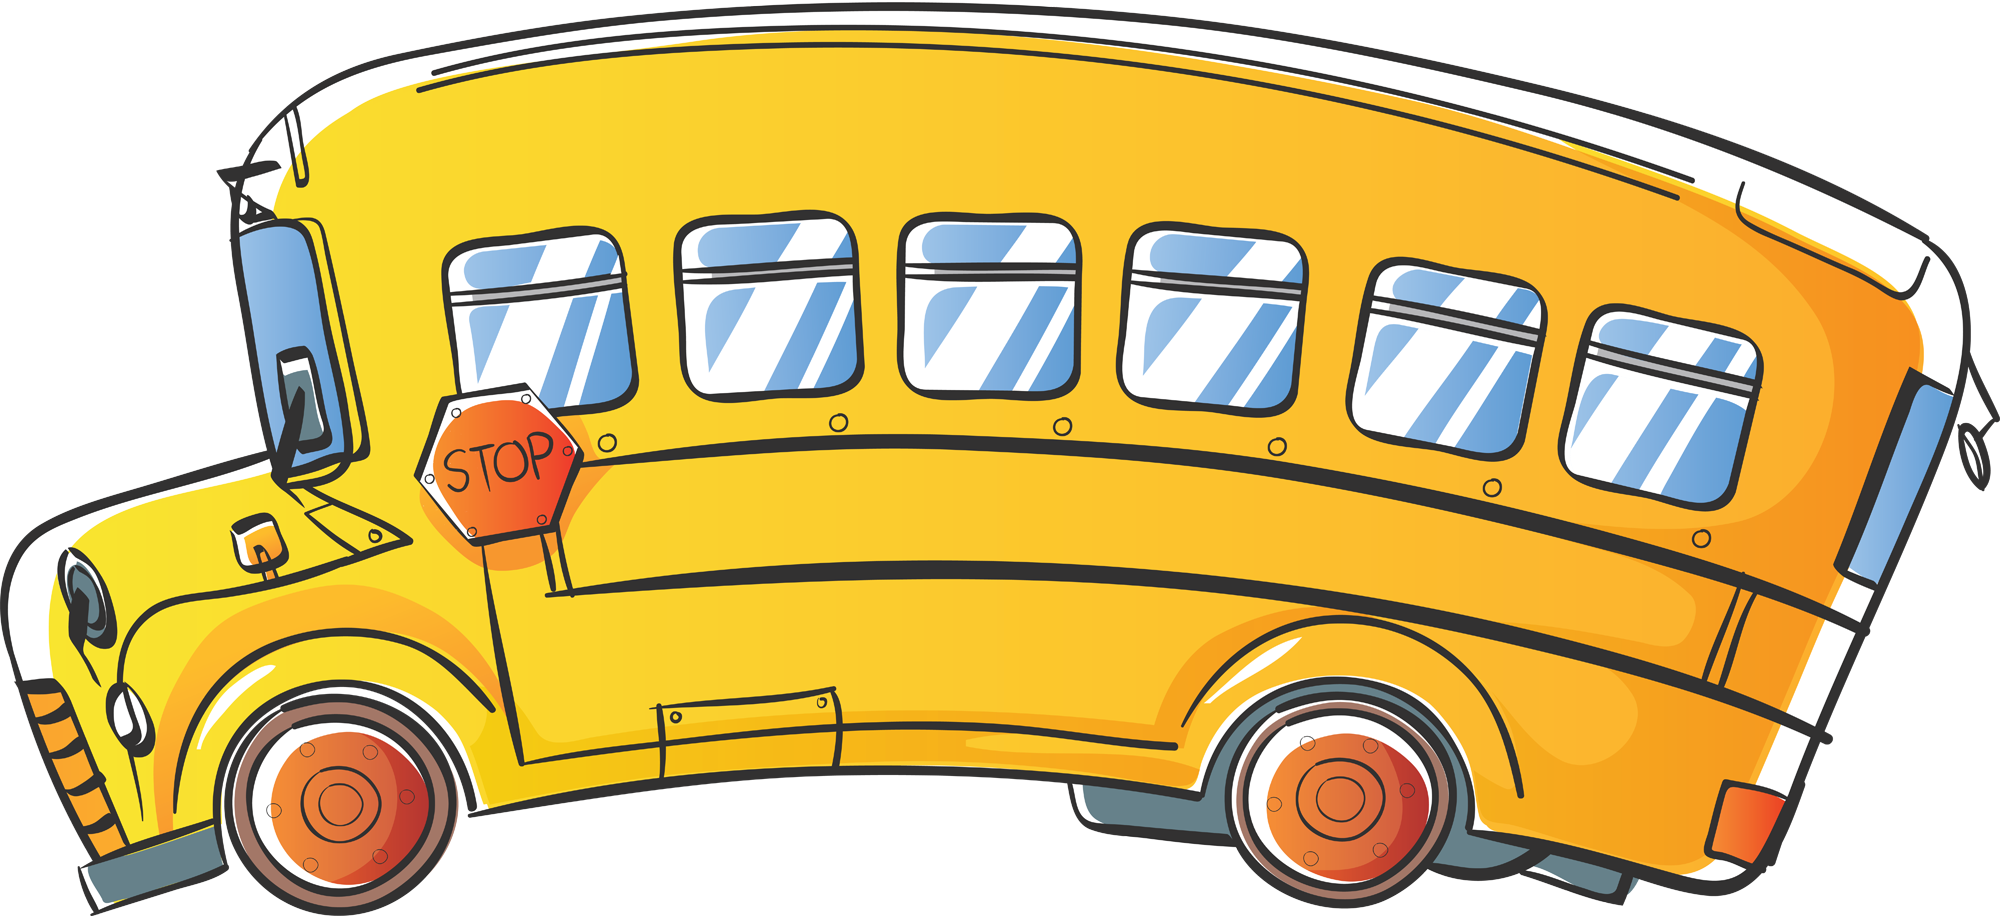 School bus clipart for kids png freeuse library 18fresh School Bus Clipart Free - Clip arts & coloring pages png freeuse library